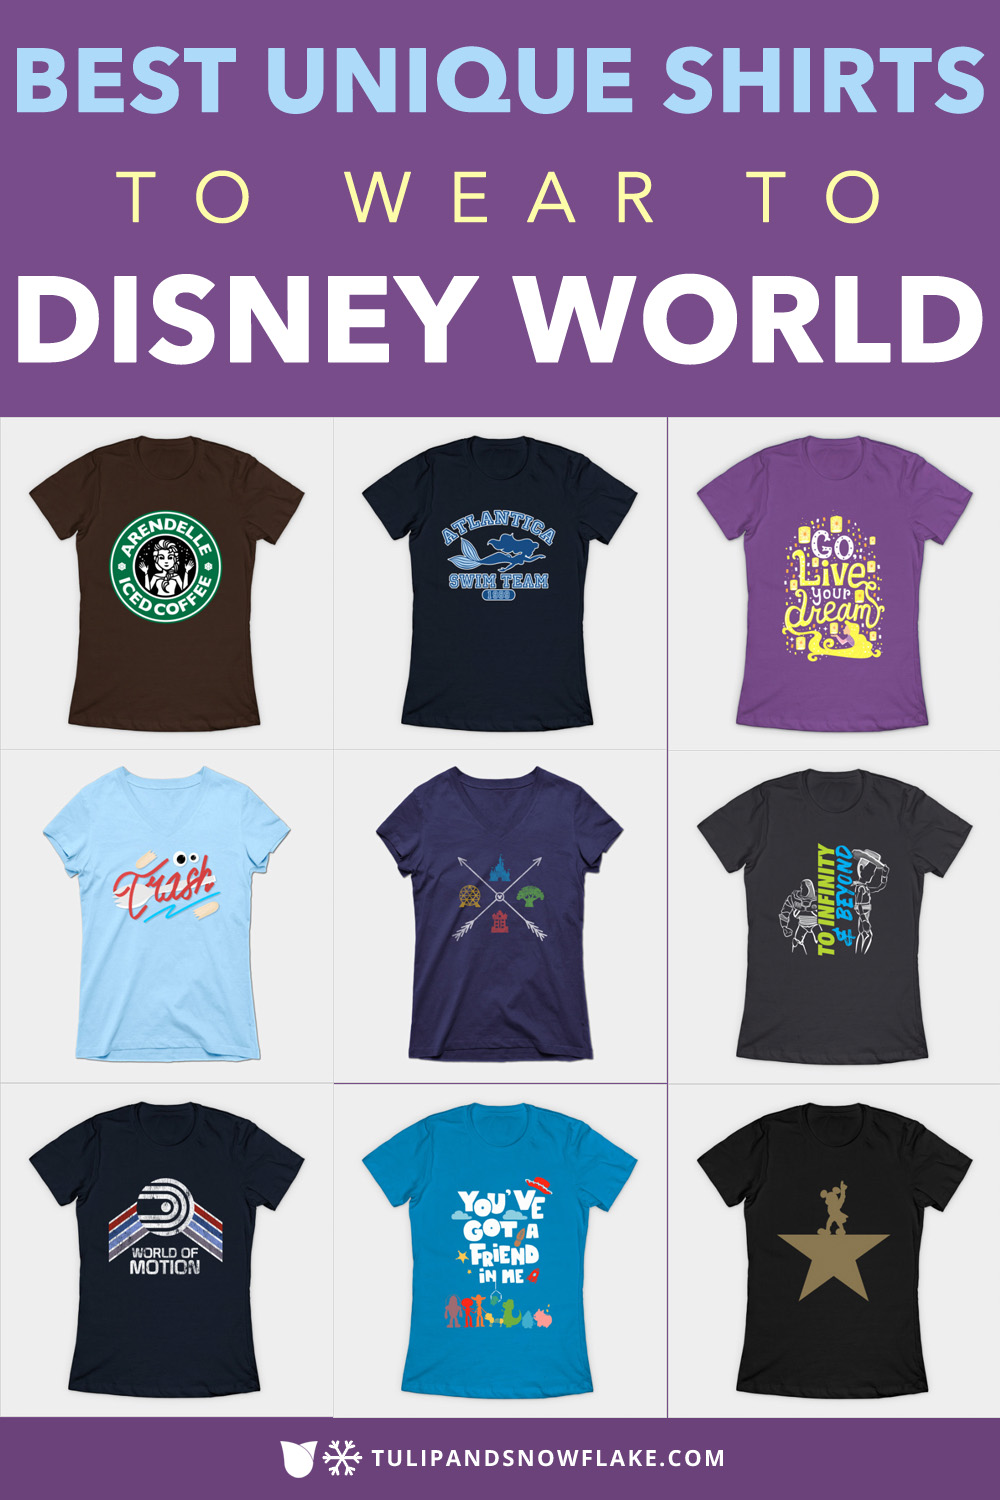 Disney World shirts